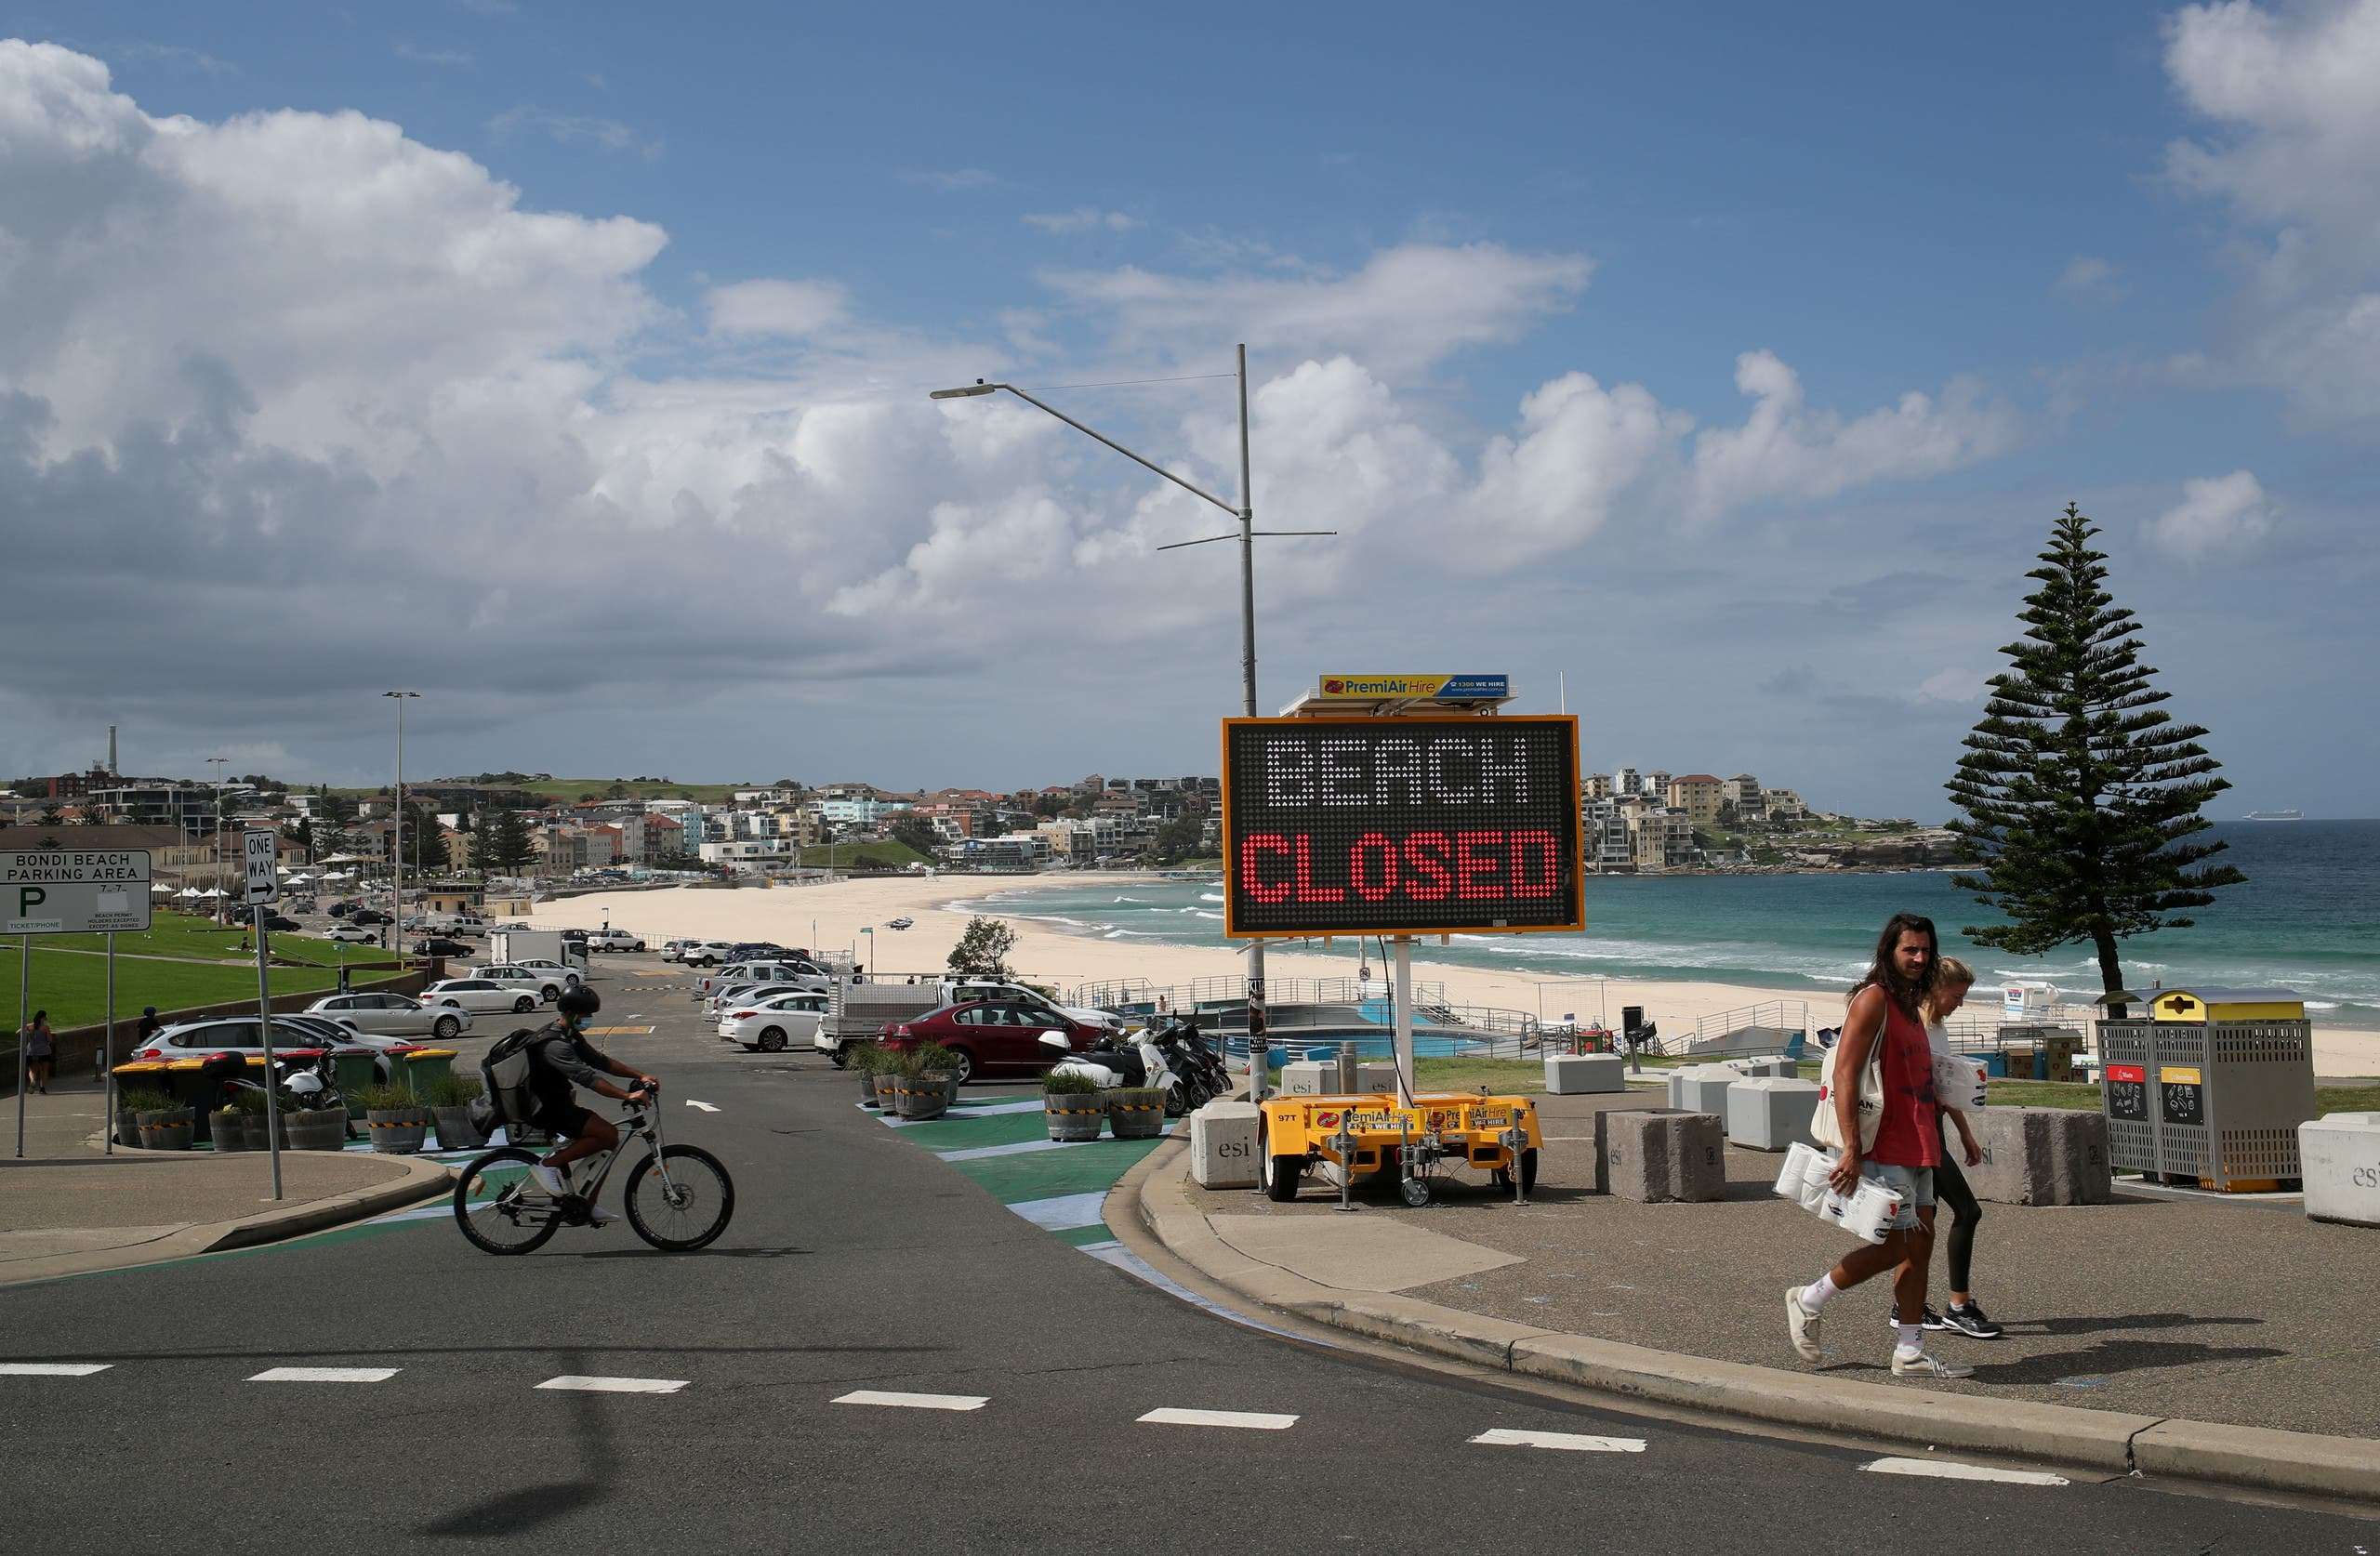 People walk past a Beach Closed sign at Bondi Beach, as the beach remains closed to prevent the spread of the coronavirus disease (COVID-19), in Sydney, Australia April 1, 2020. (File photo: Reuters)